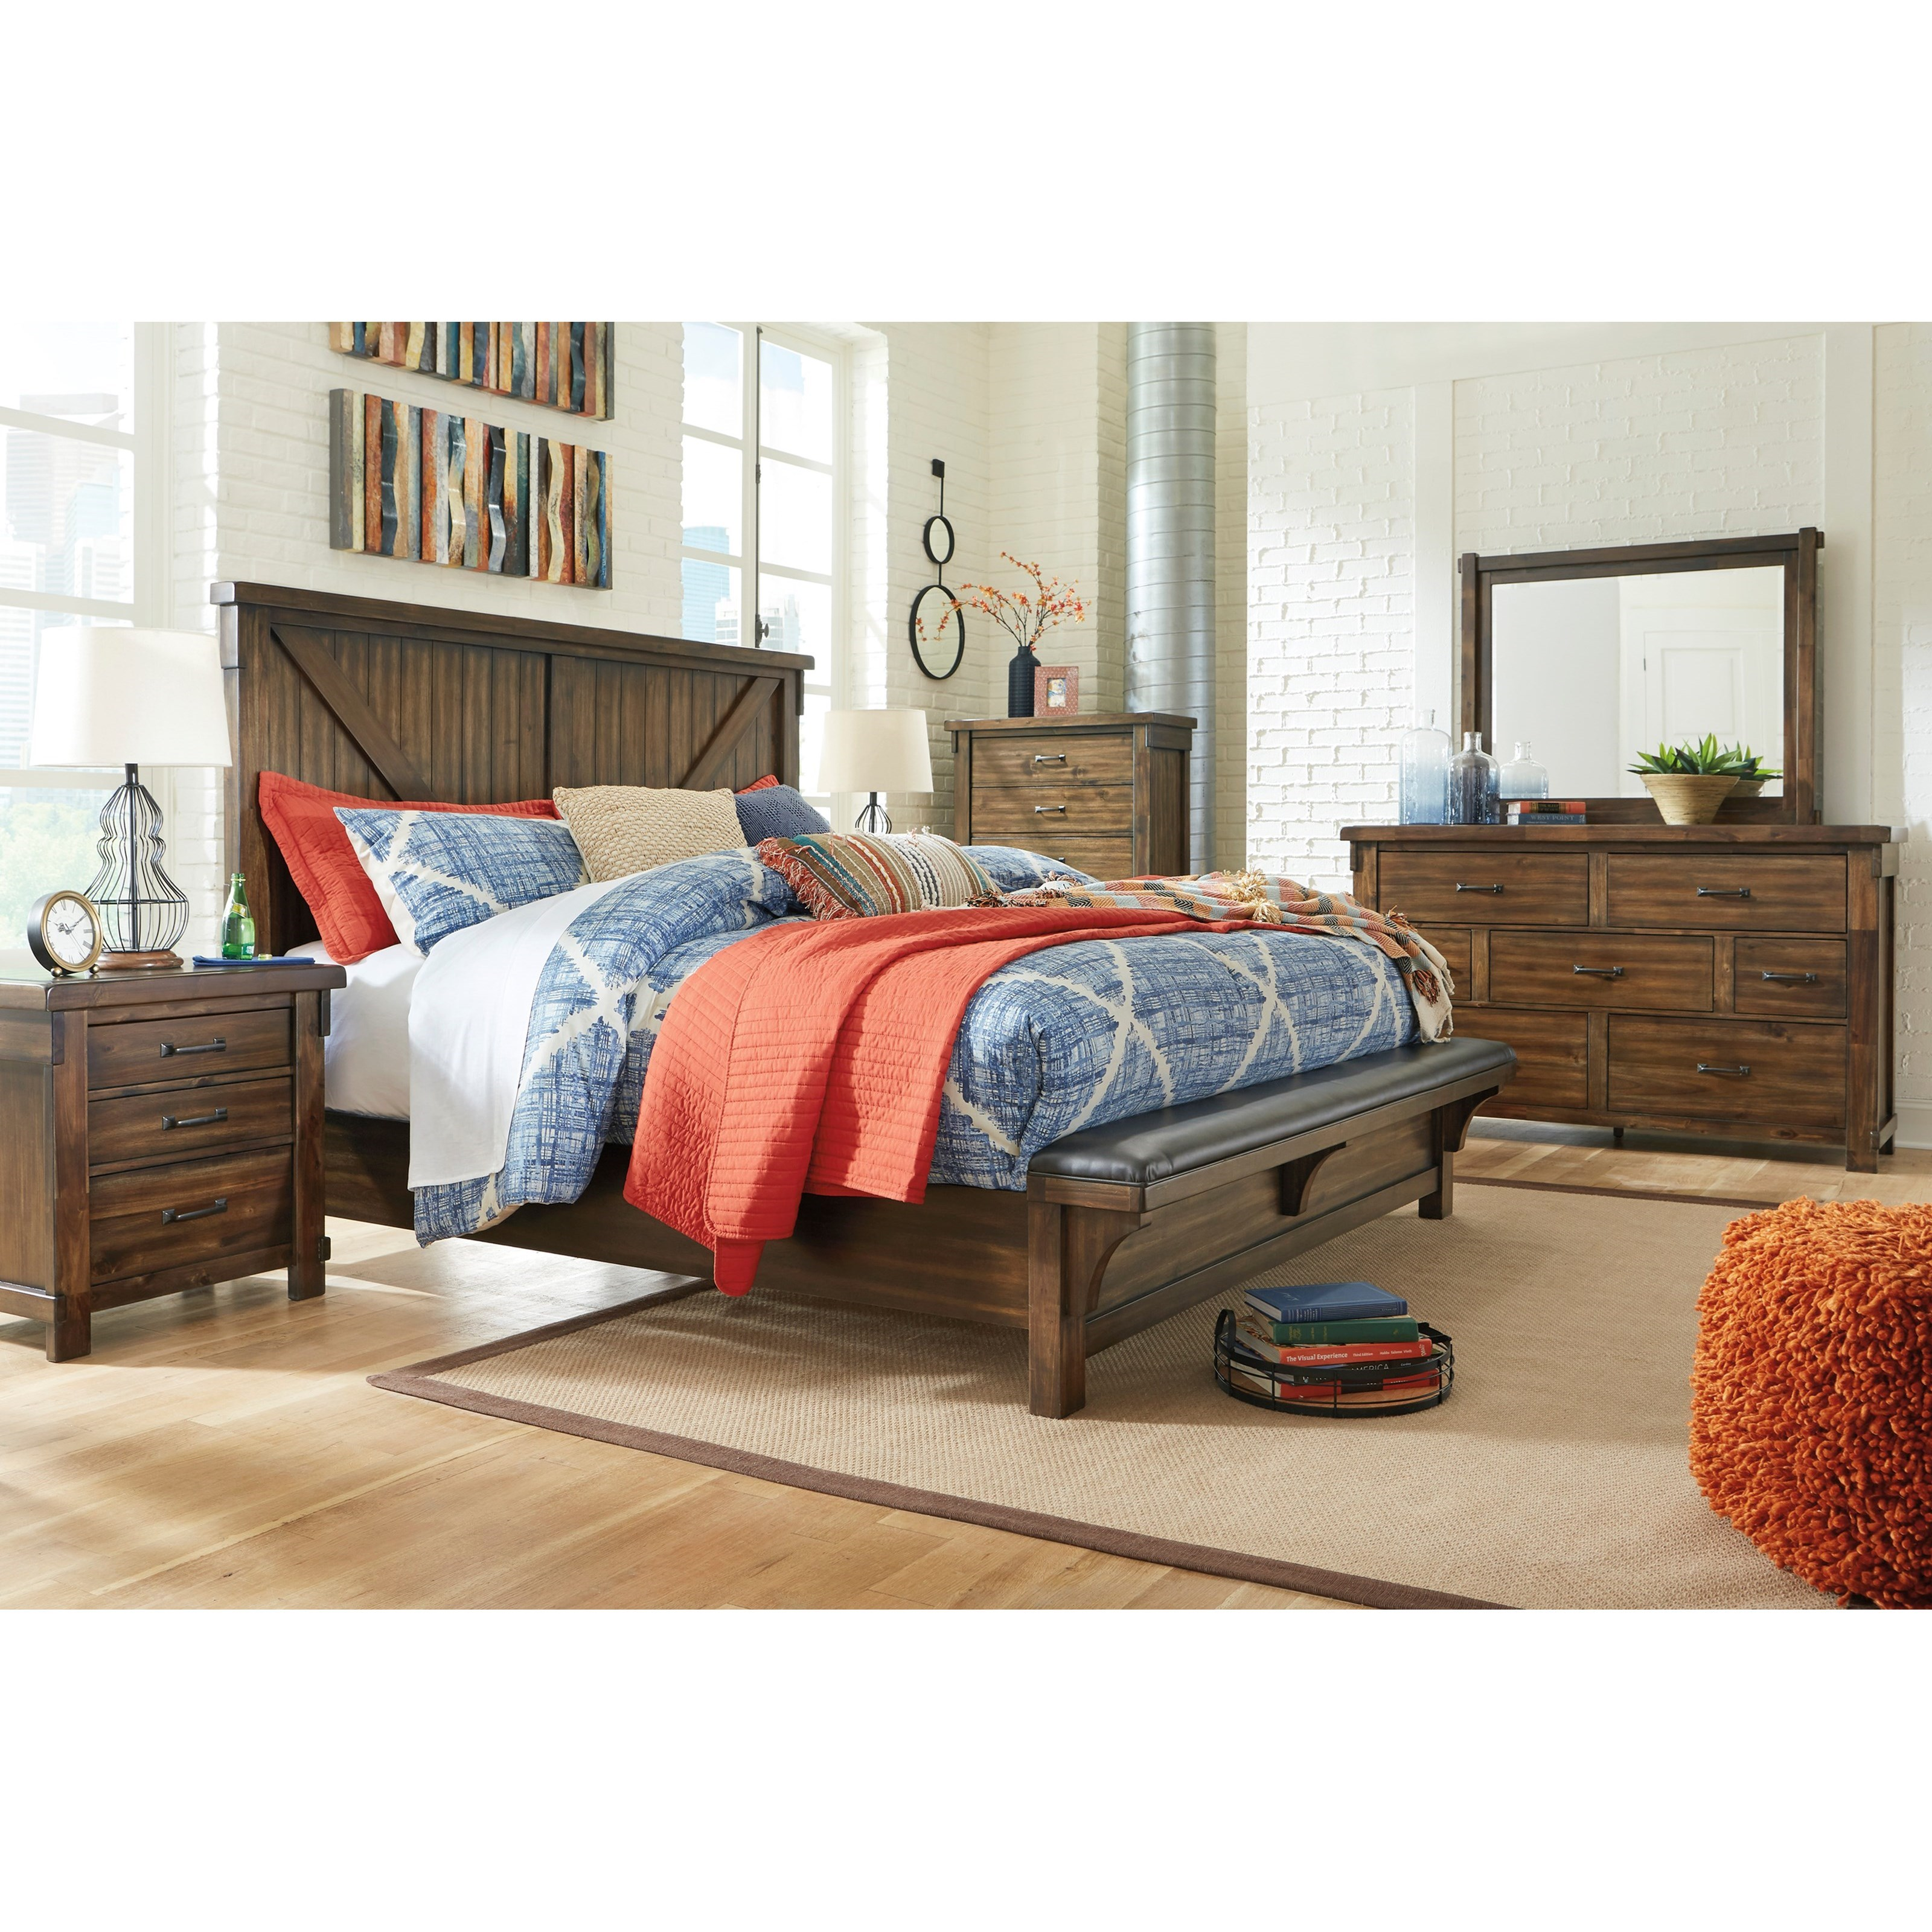 Lakeleigh Queen Bedroom Group by Signature Design by Ashley at Northeast Factory Direct